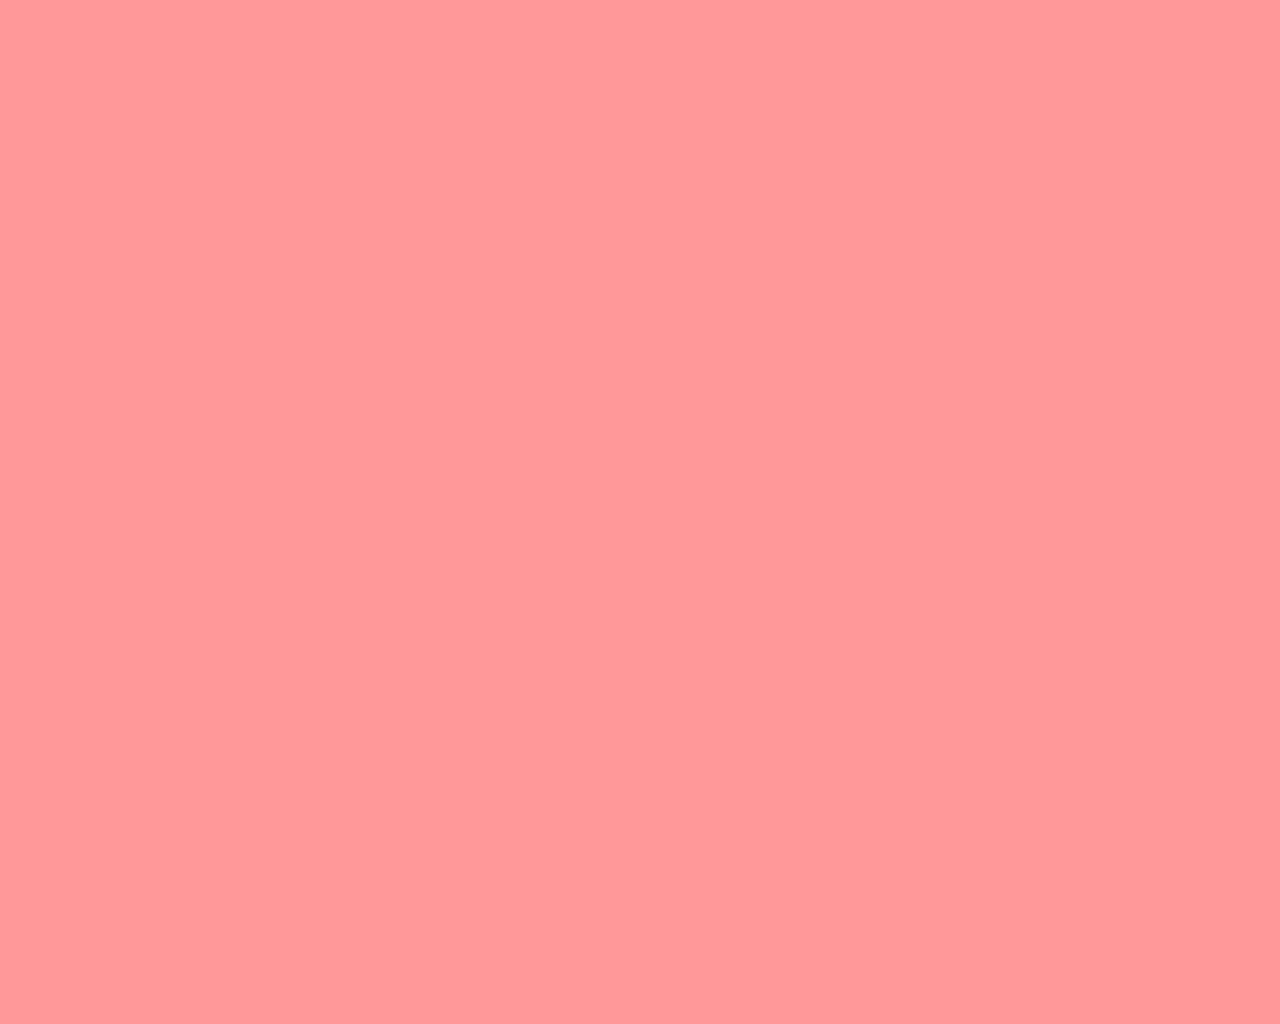 1280x1024 Light Salmon Pink Solid Color Background